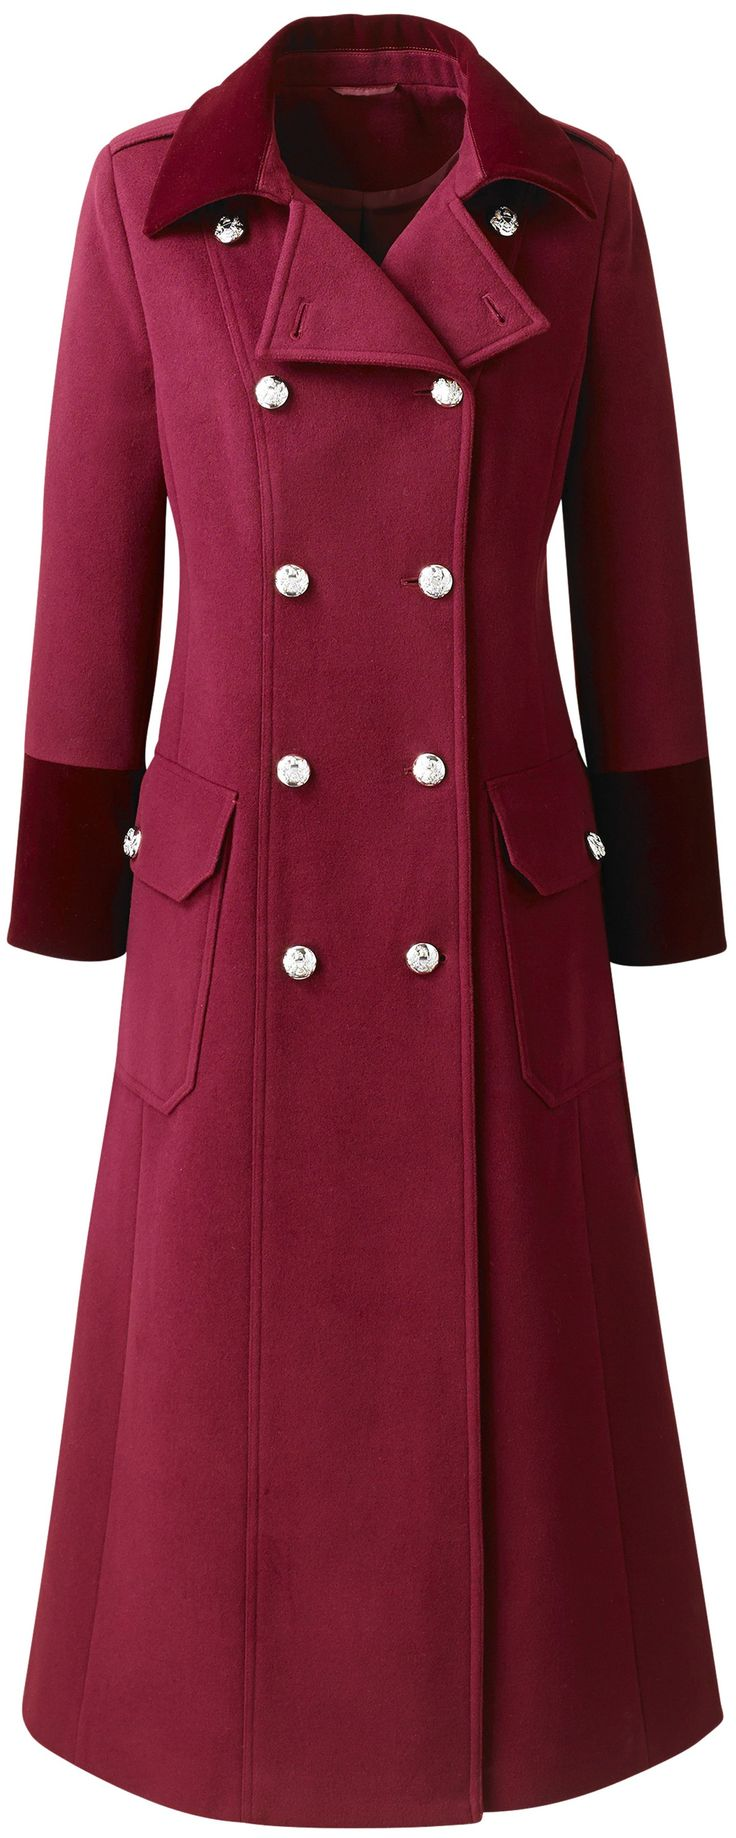 plus size maxi coat - cute coat and jacket trends for fall 2013 and winter 2014 - http://boomerinas.com/2013/11/06/trendy-coats-for-fall-winter-mature-woman-seeking-cute-comfortable-jacket-for-long-term-relationship/